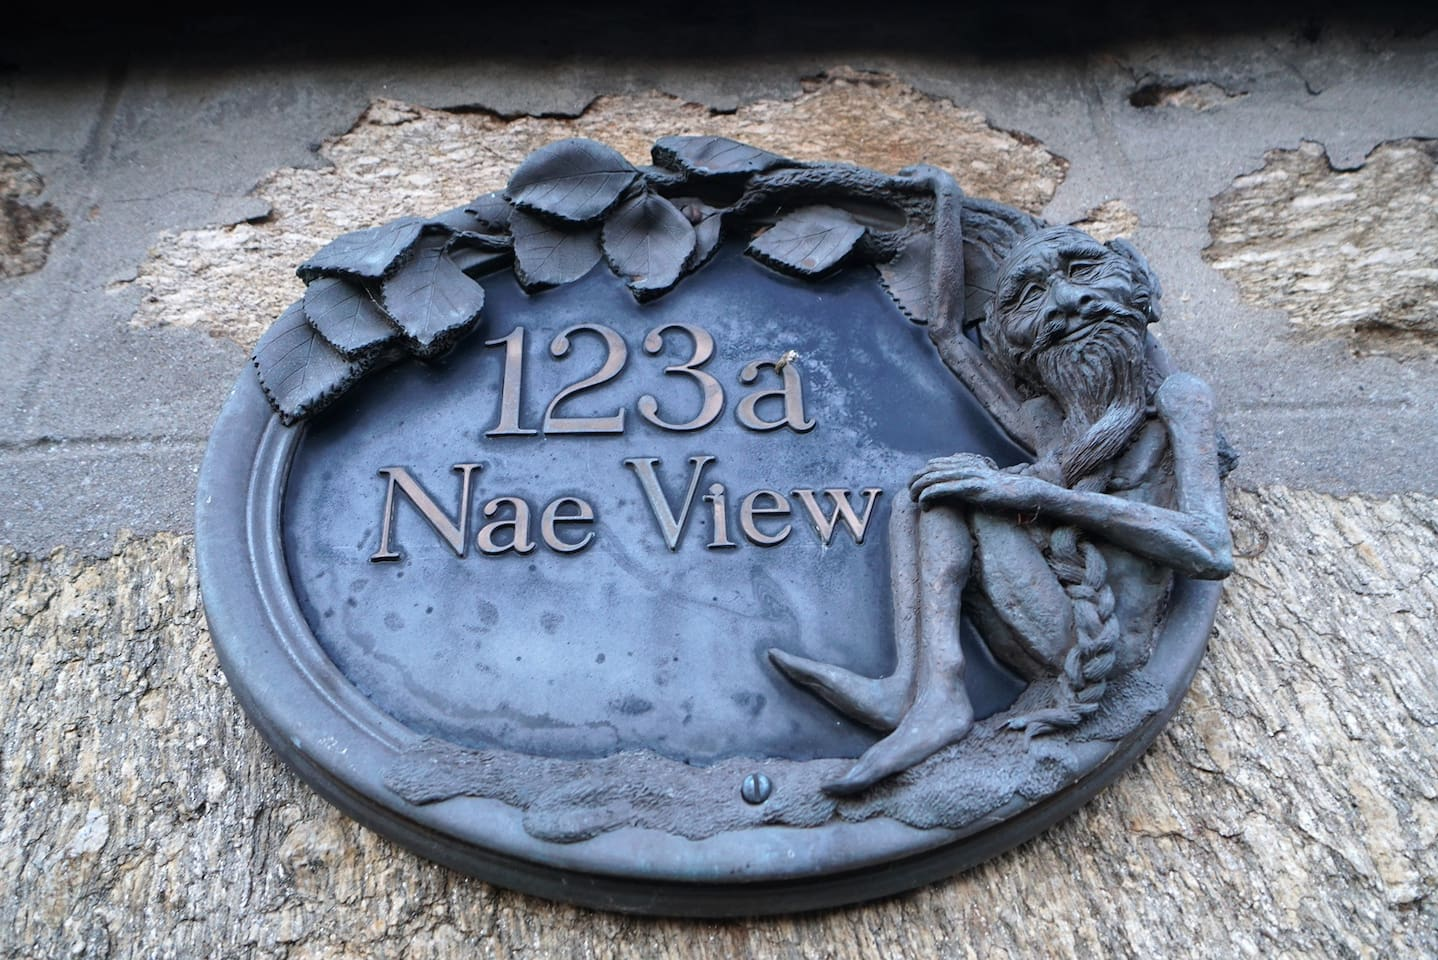 Welcome to Nae View